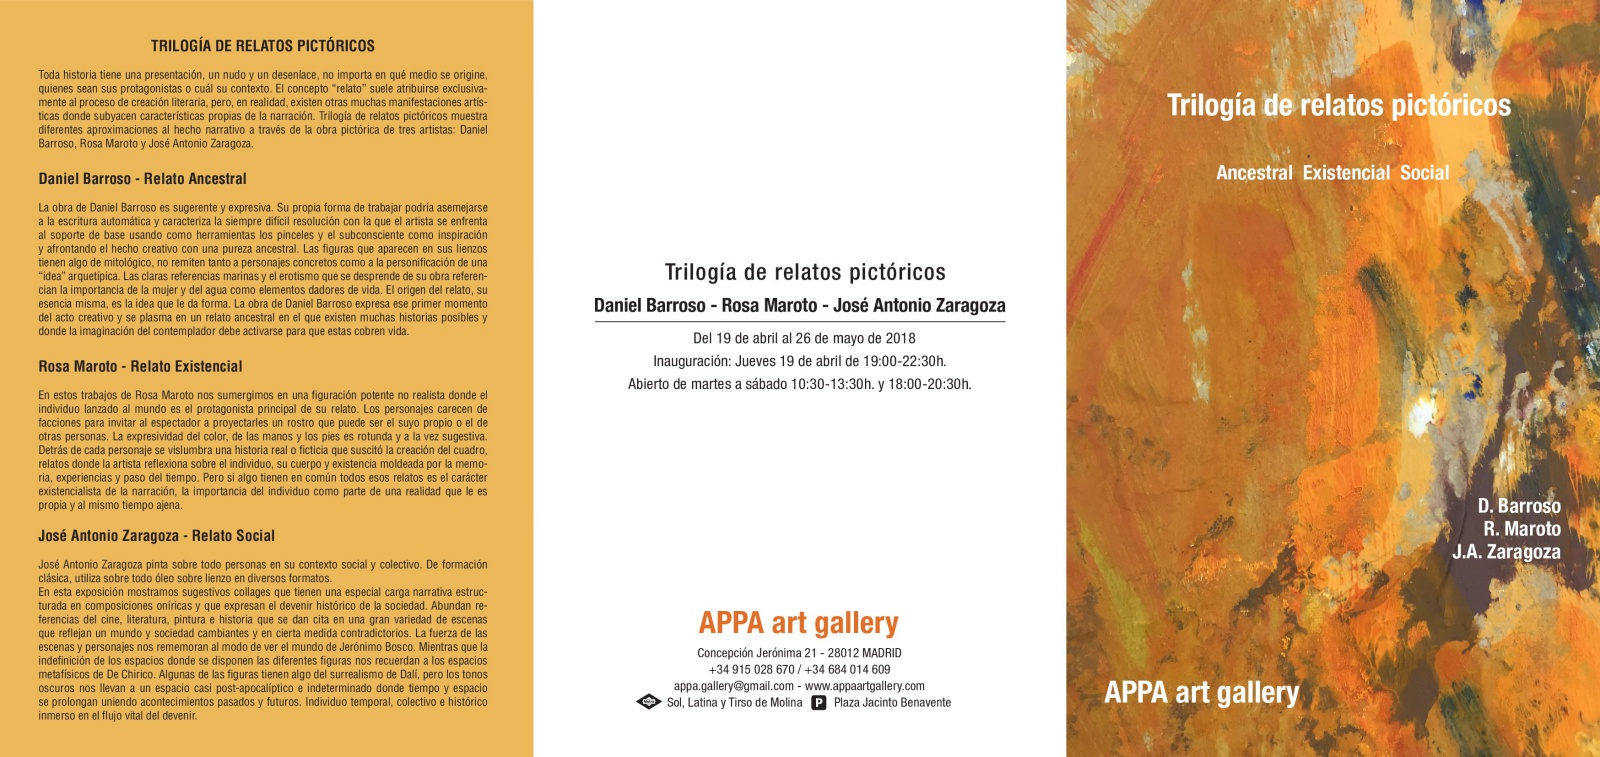 Exposición de collages por Jose Antonio Zaragoza en Galeria de Arte Appa Art Gallery en Madrid